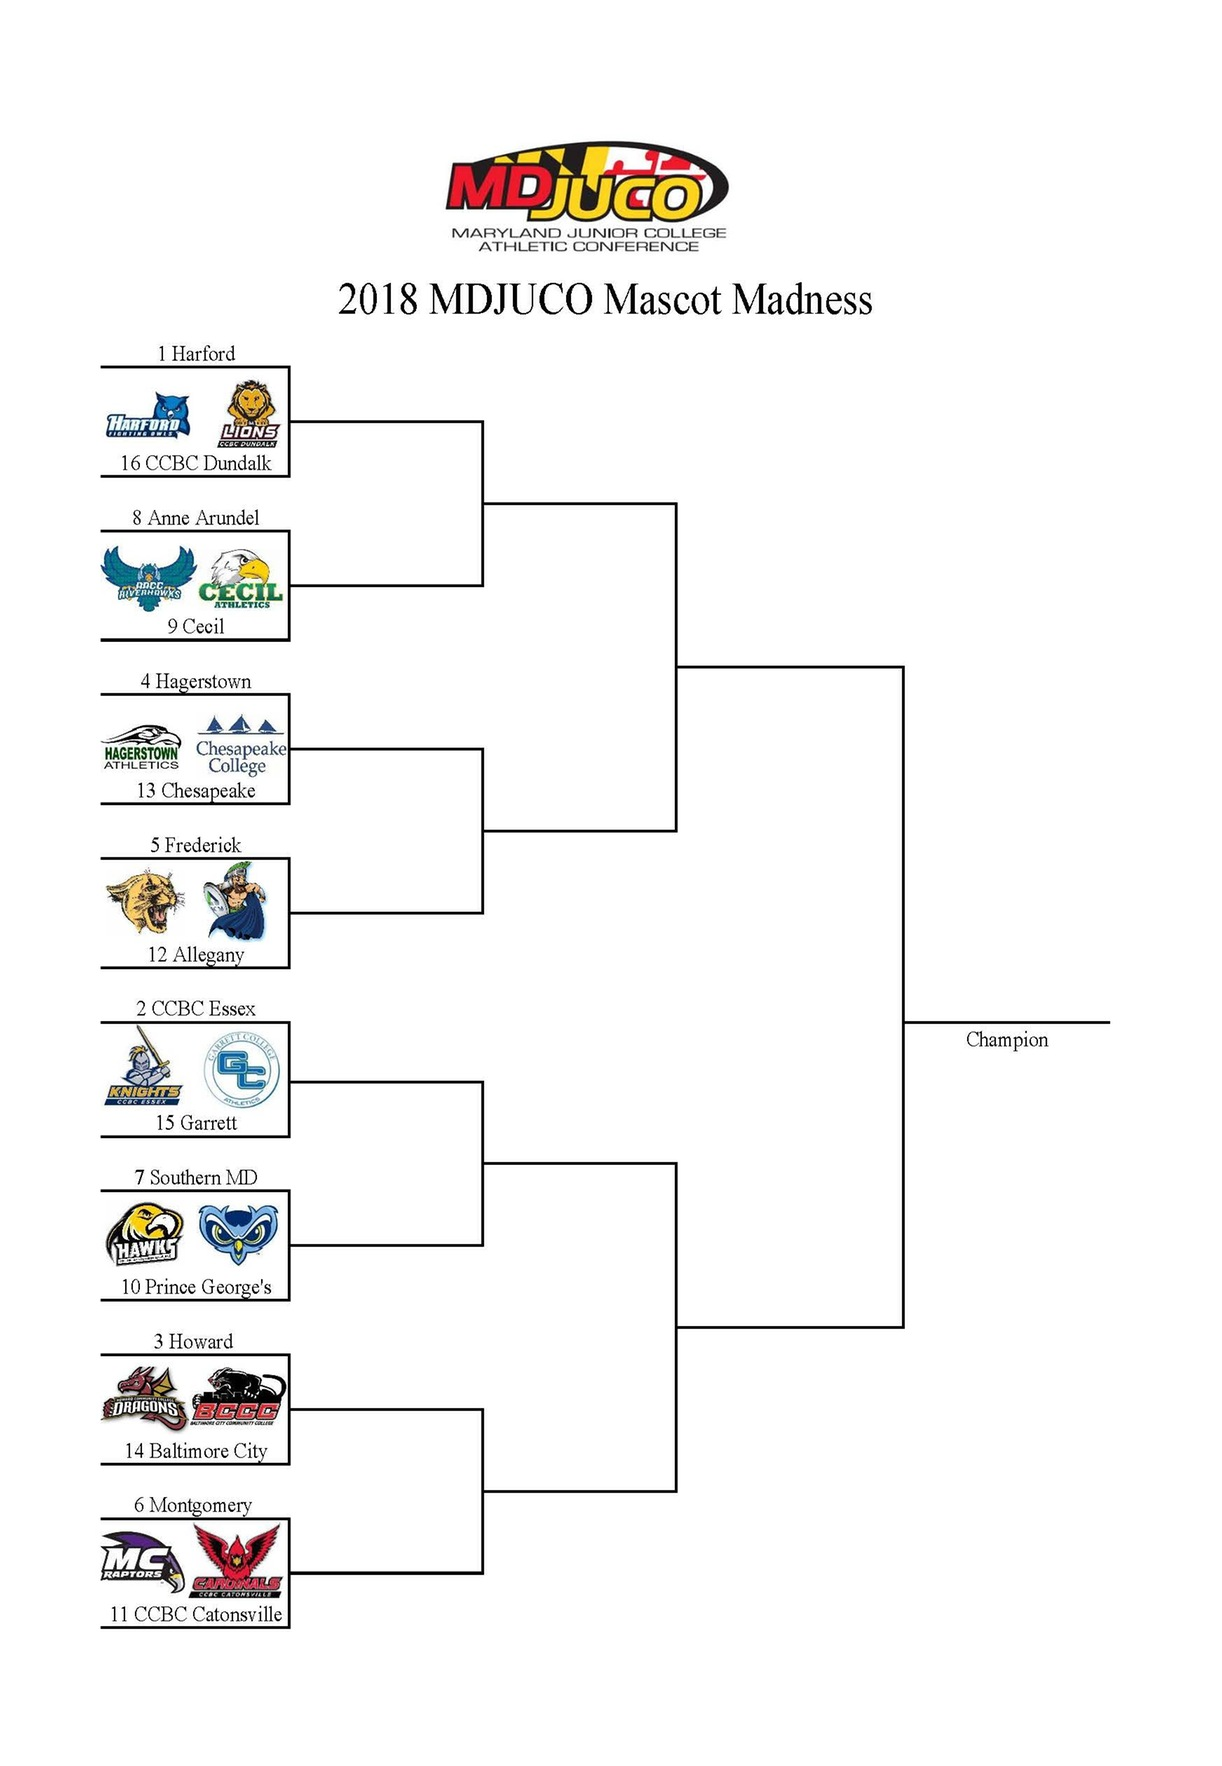 2018 Maryland JUCO Mascot Challenge: Vote Now on Twitter